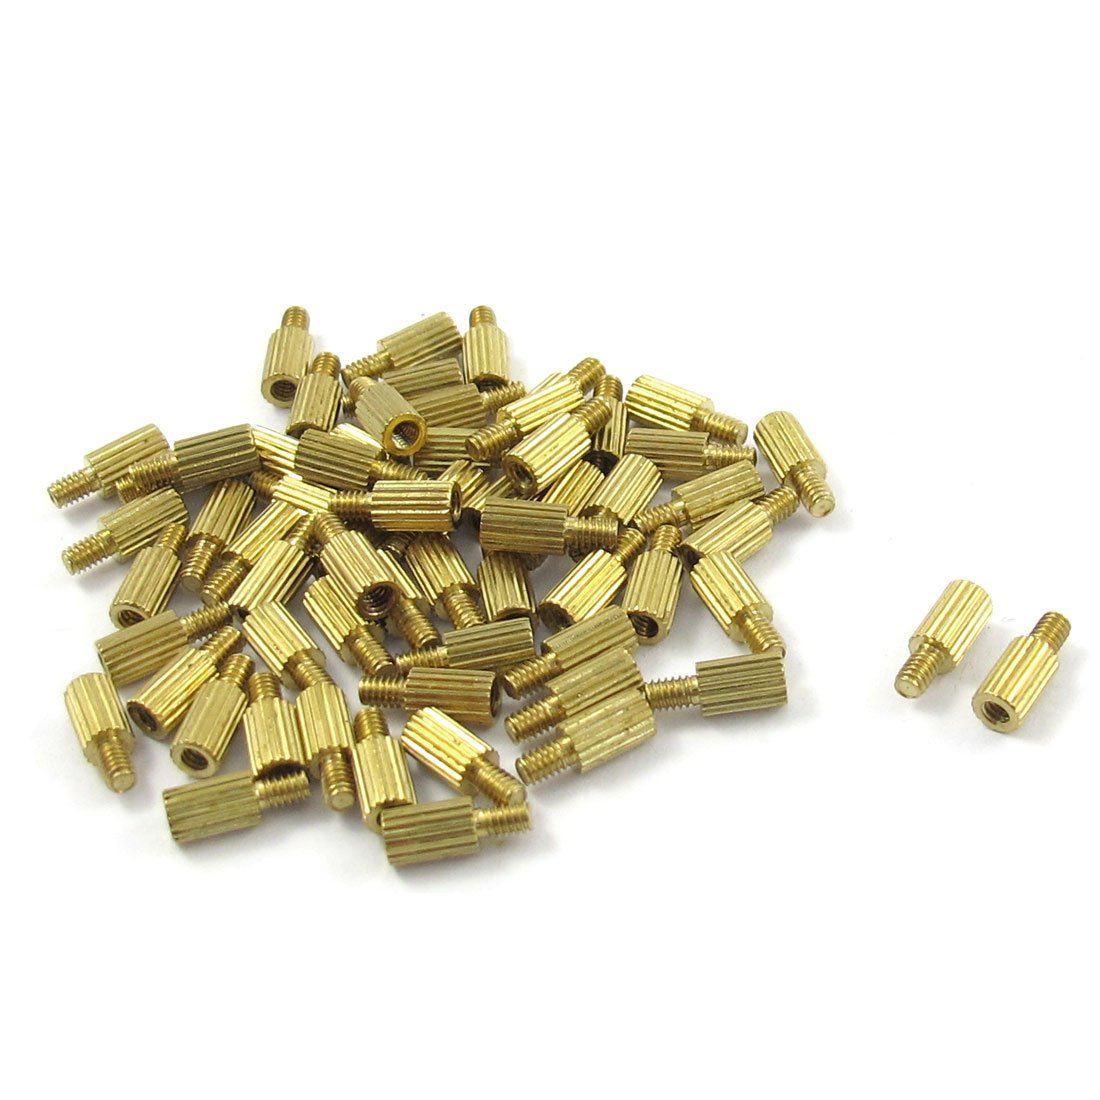 CLOS 50 Pcs Male to Female Thread Brass Pillars Standoff Spacer M2x5mmx8mm